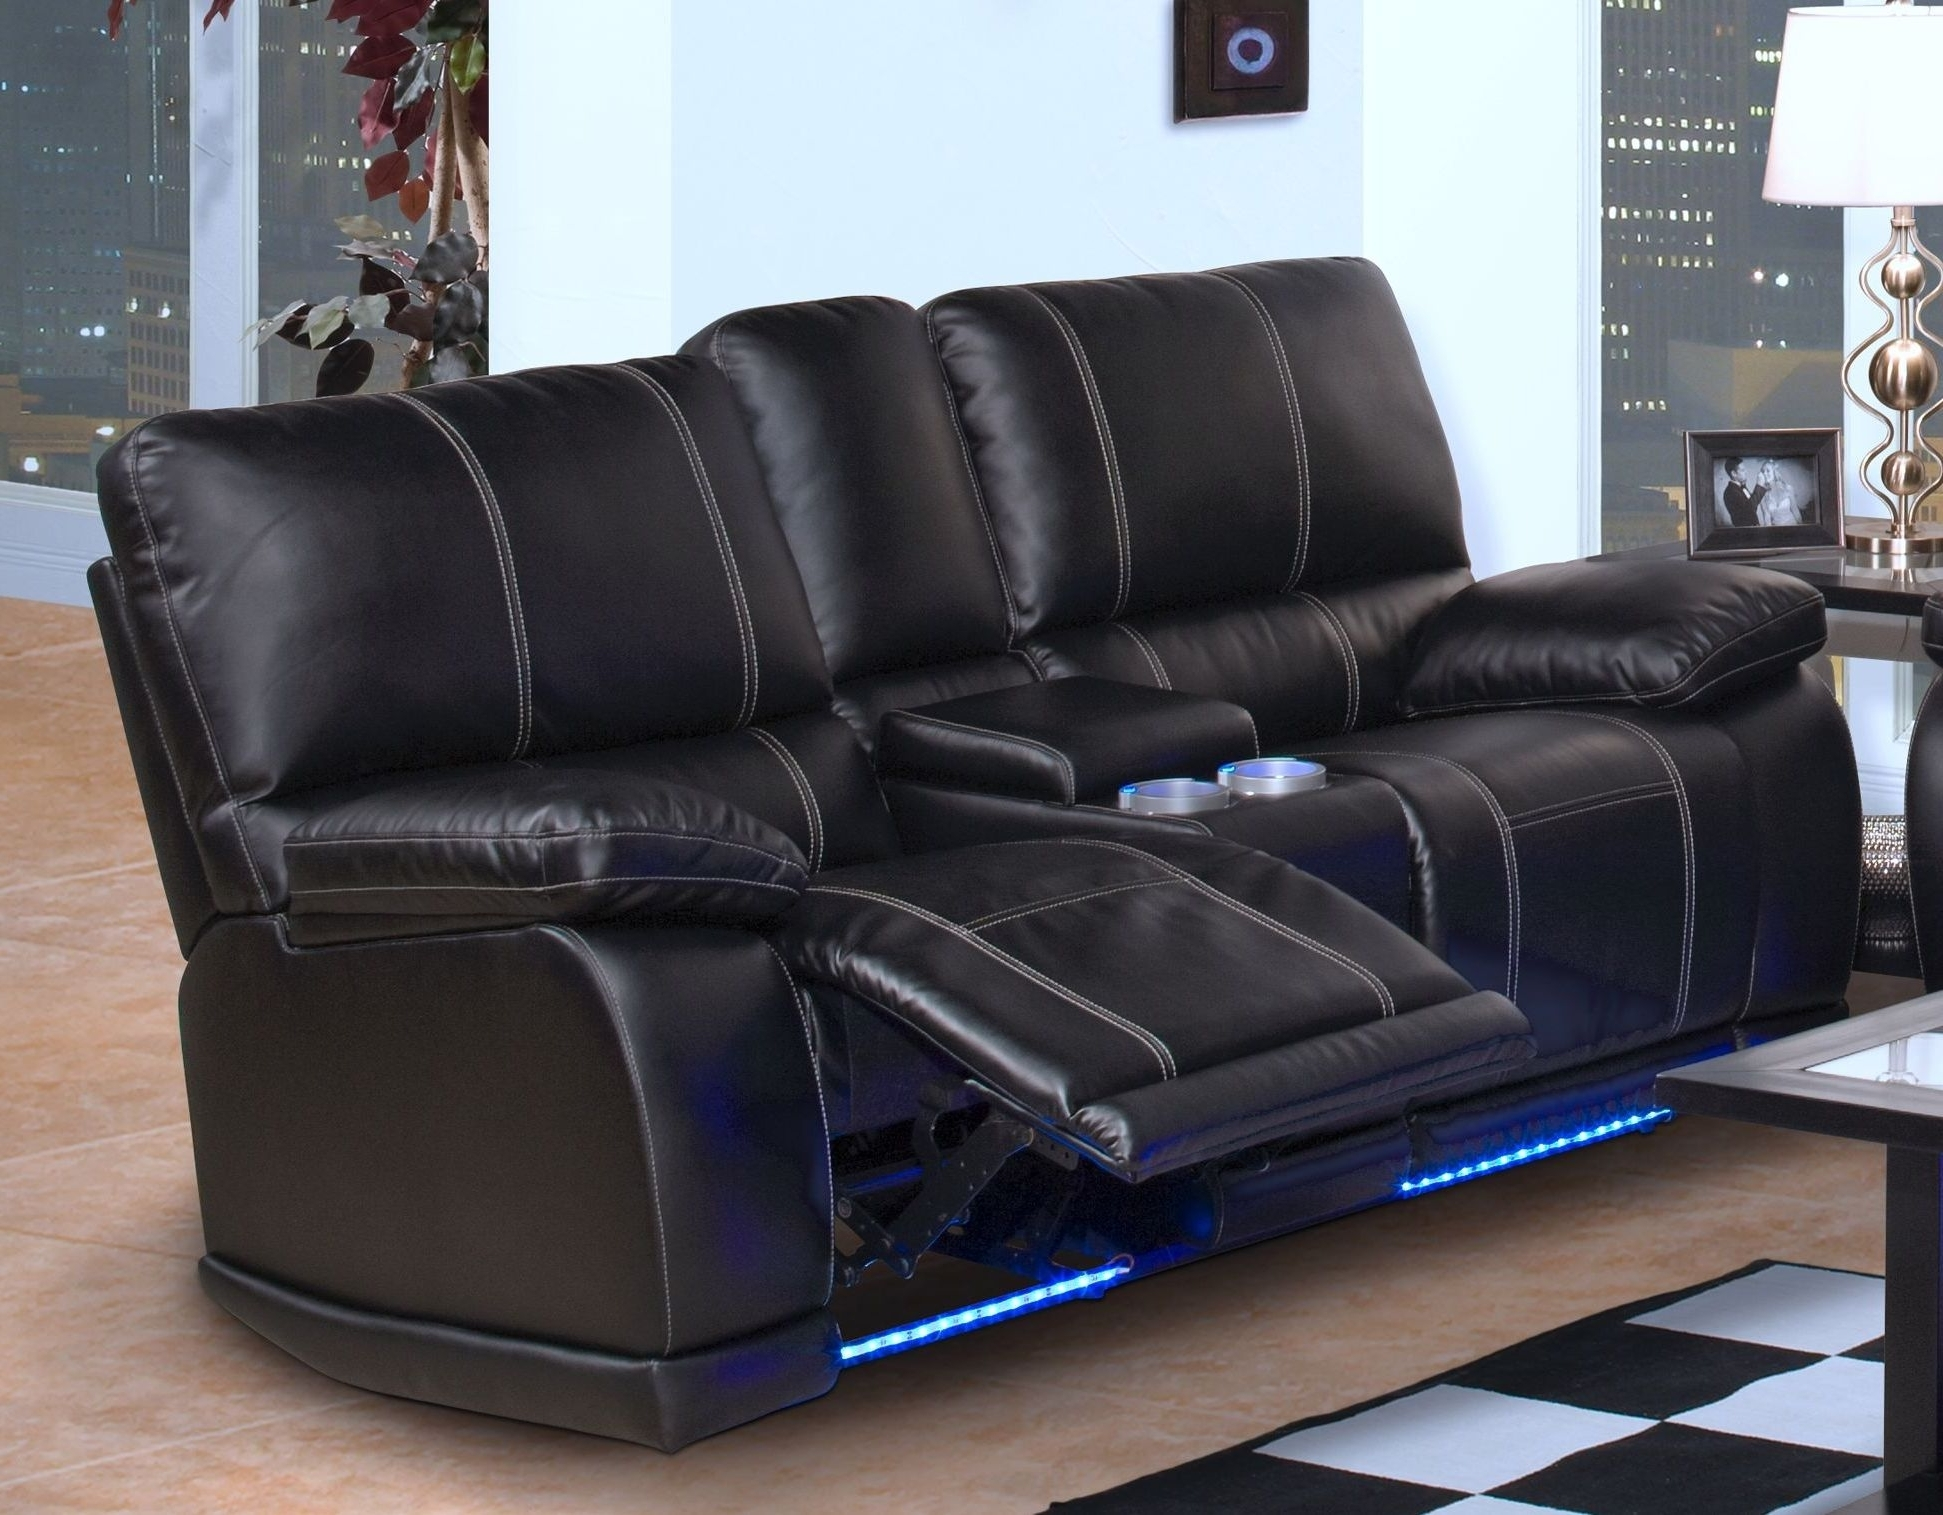 Most Popular Leather Sofas With Storage Pertaining To Recliners With Storage Lazy Boy Sectional Power Recliners Full (View 14 of 20)